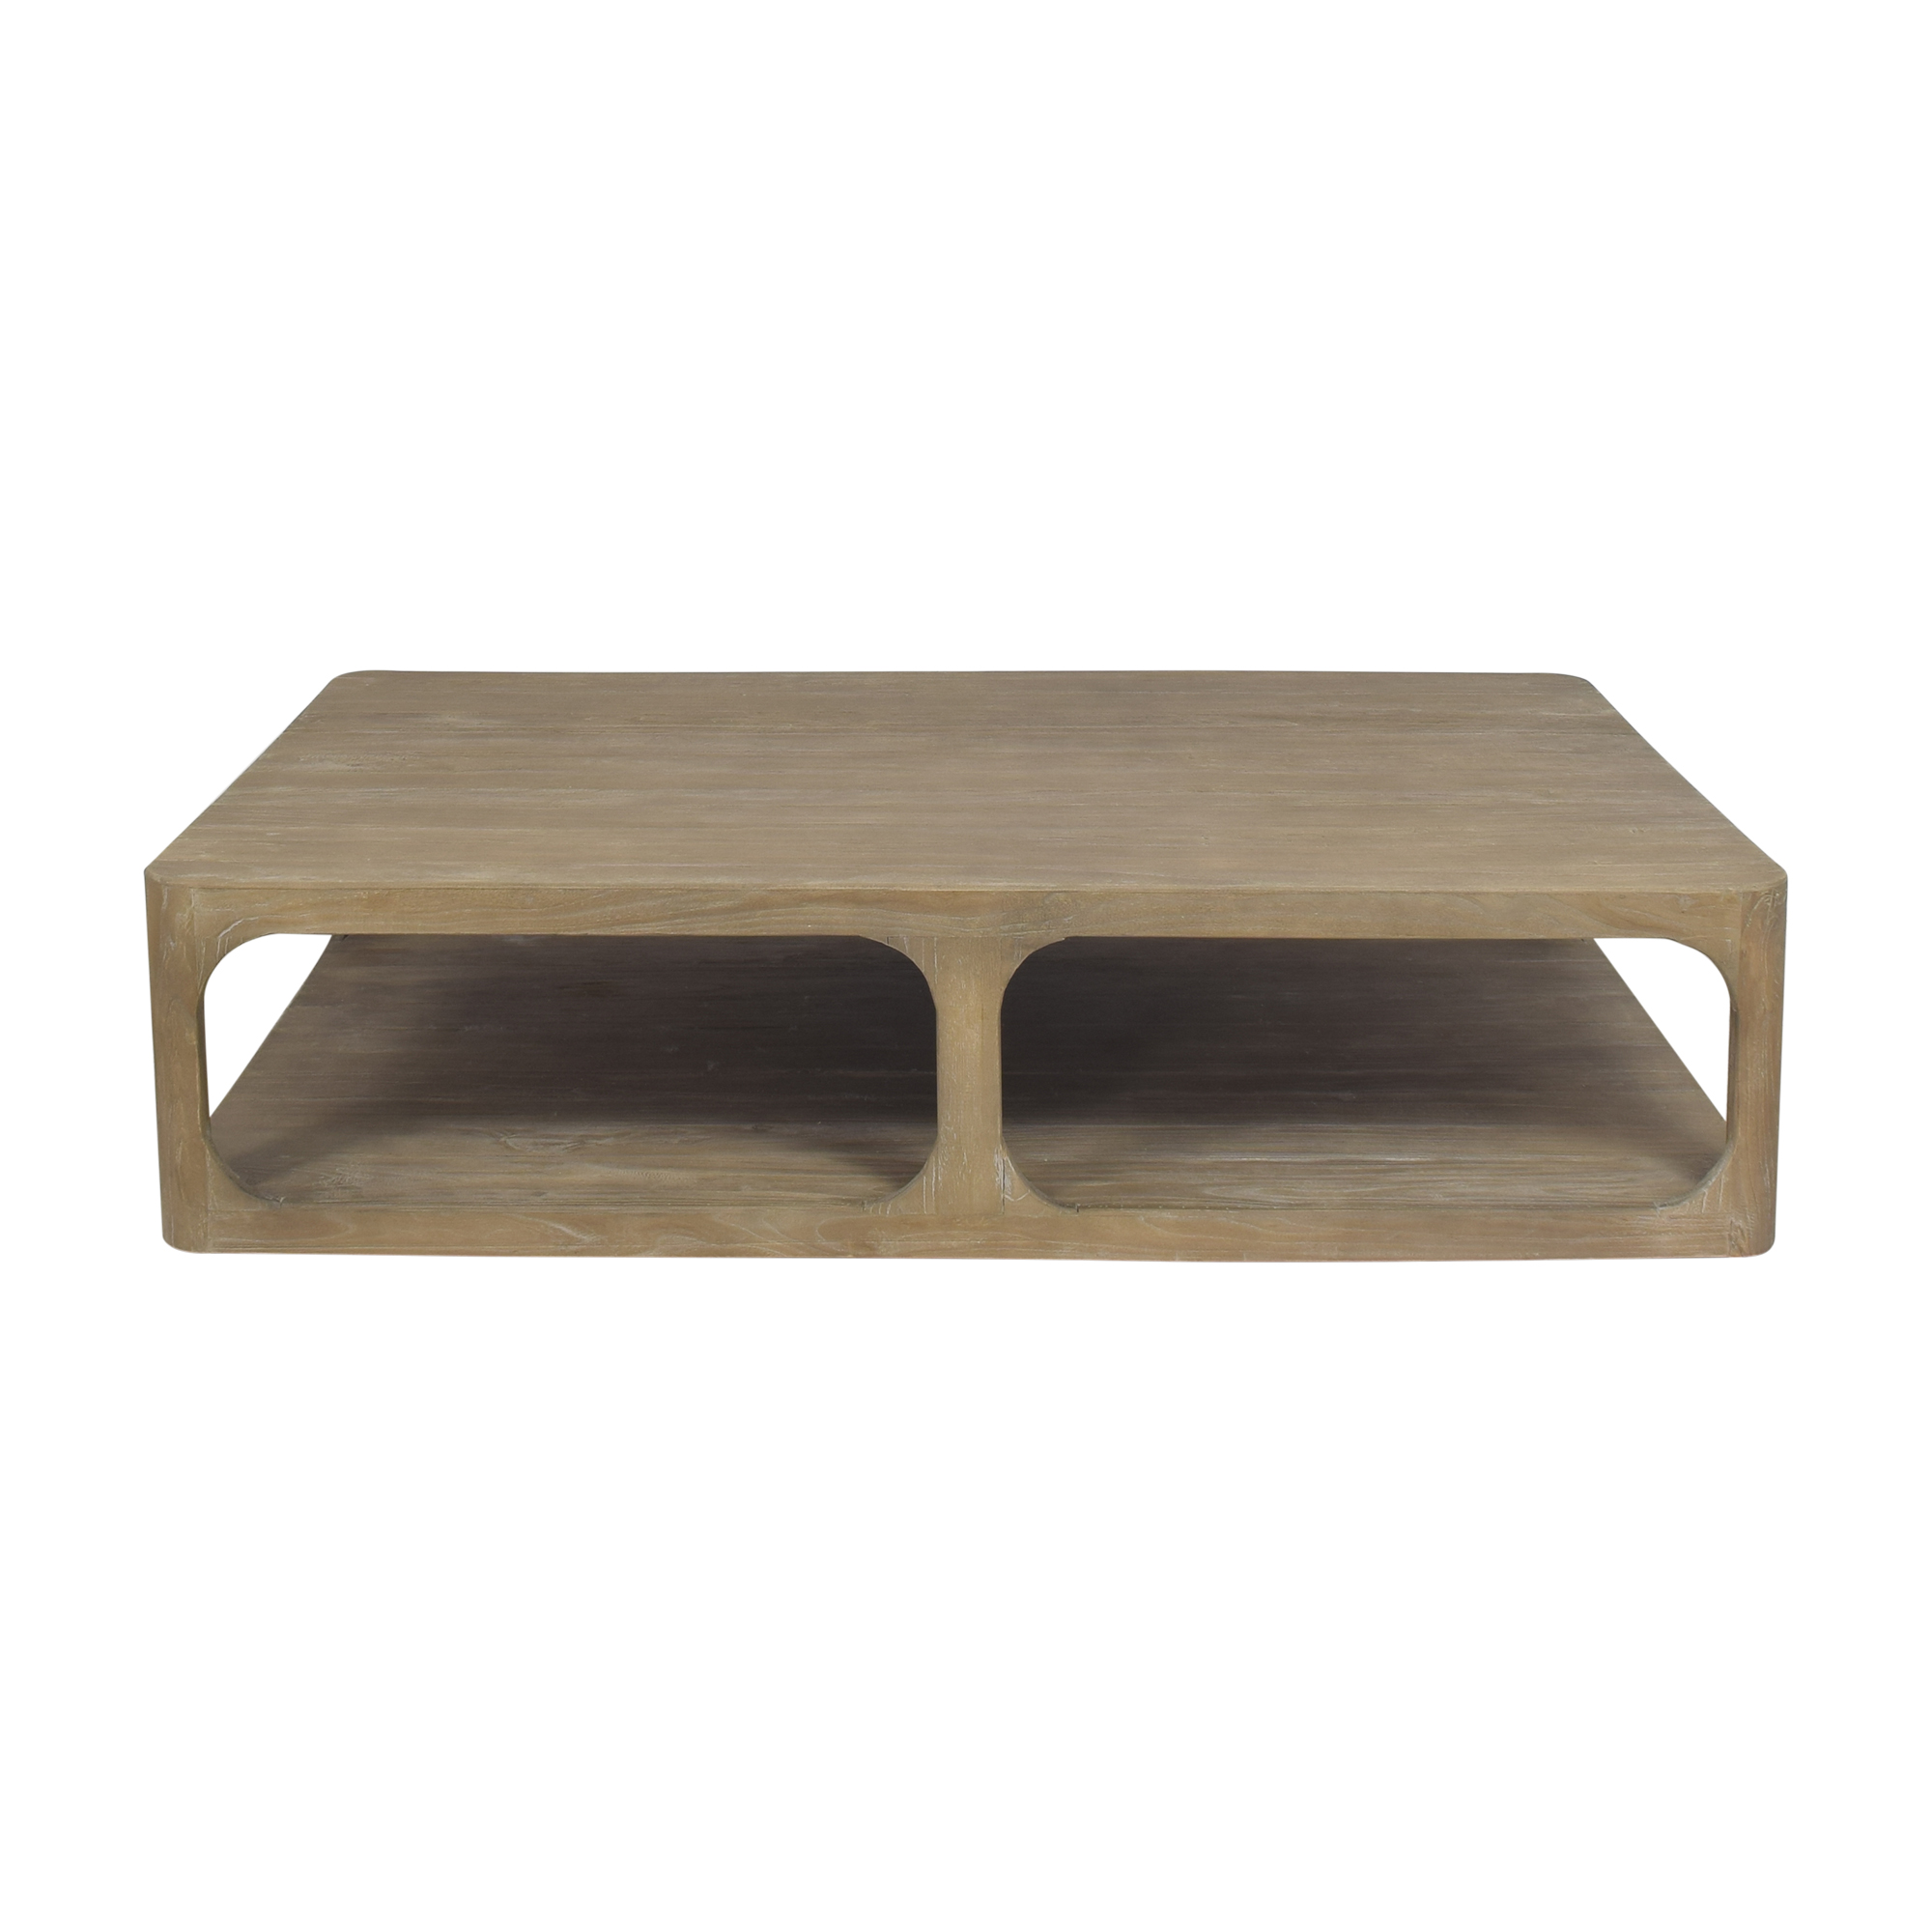 Restoration Hardware Restoration Hardware Martens Coffee Table for sale